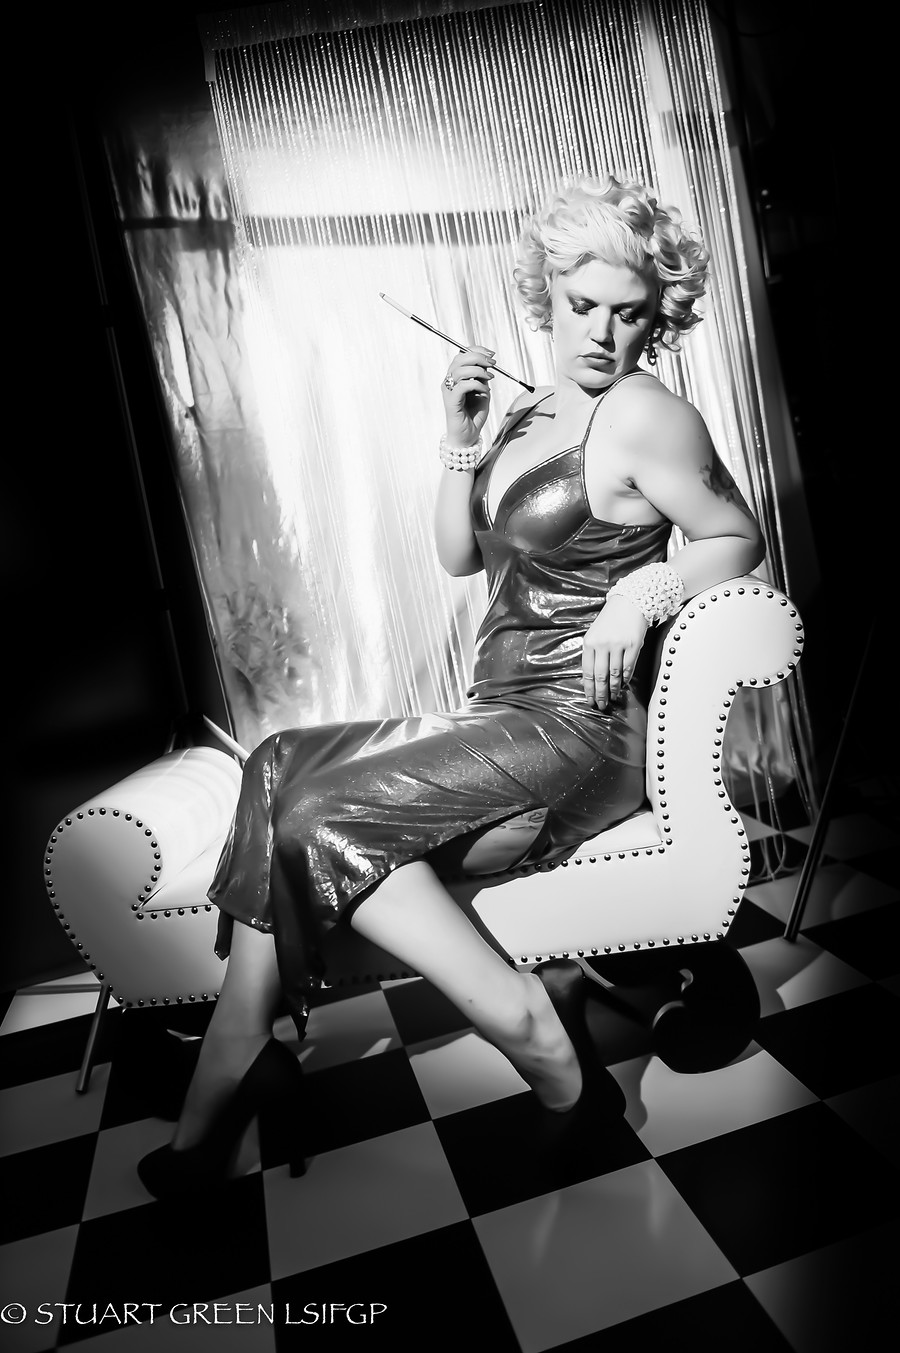 marilyn monroe style shoot / Photography by Stuart Green-Photography, Model Lelly D / Uploaded 9th July 2014 @ 09:26 PM